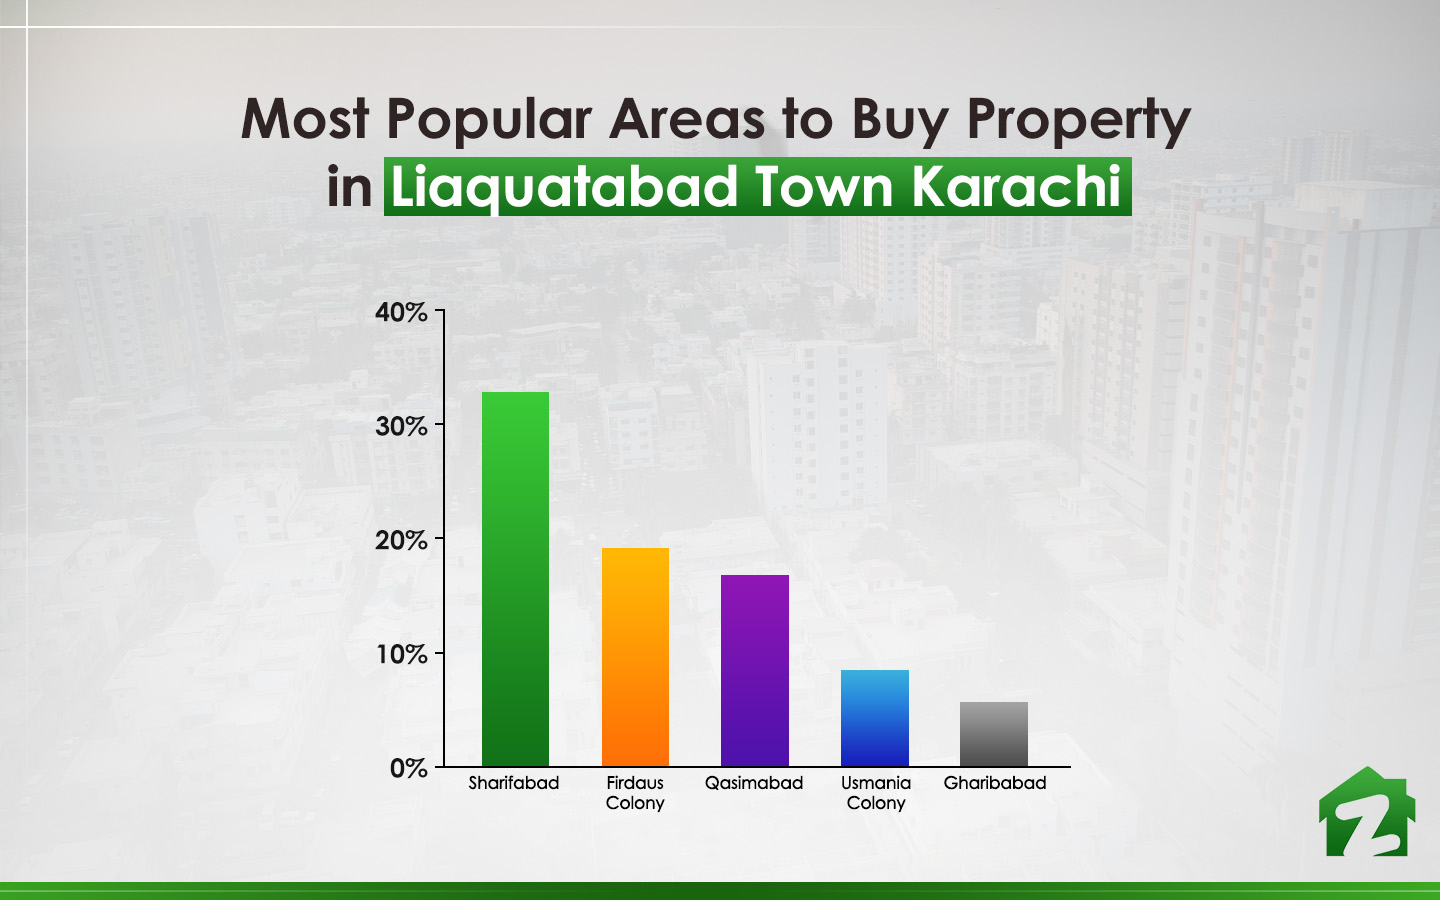 The most sought-after areas to buy property in Liaquatabad Town Karachi